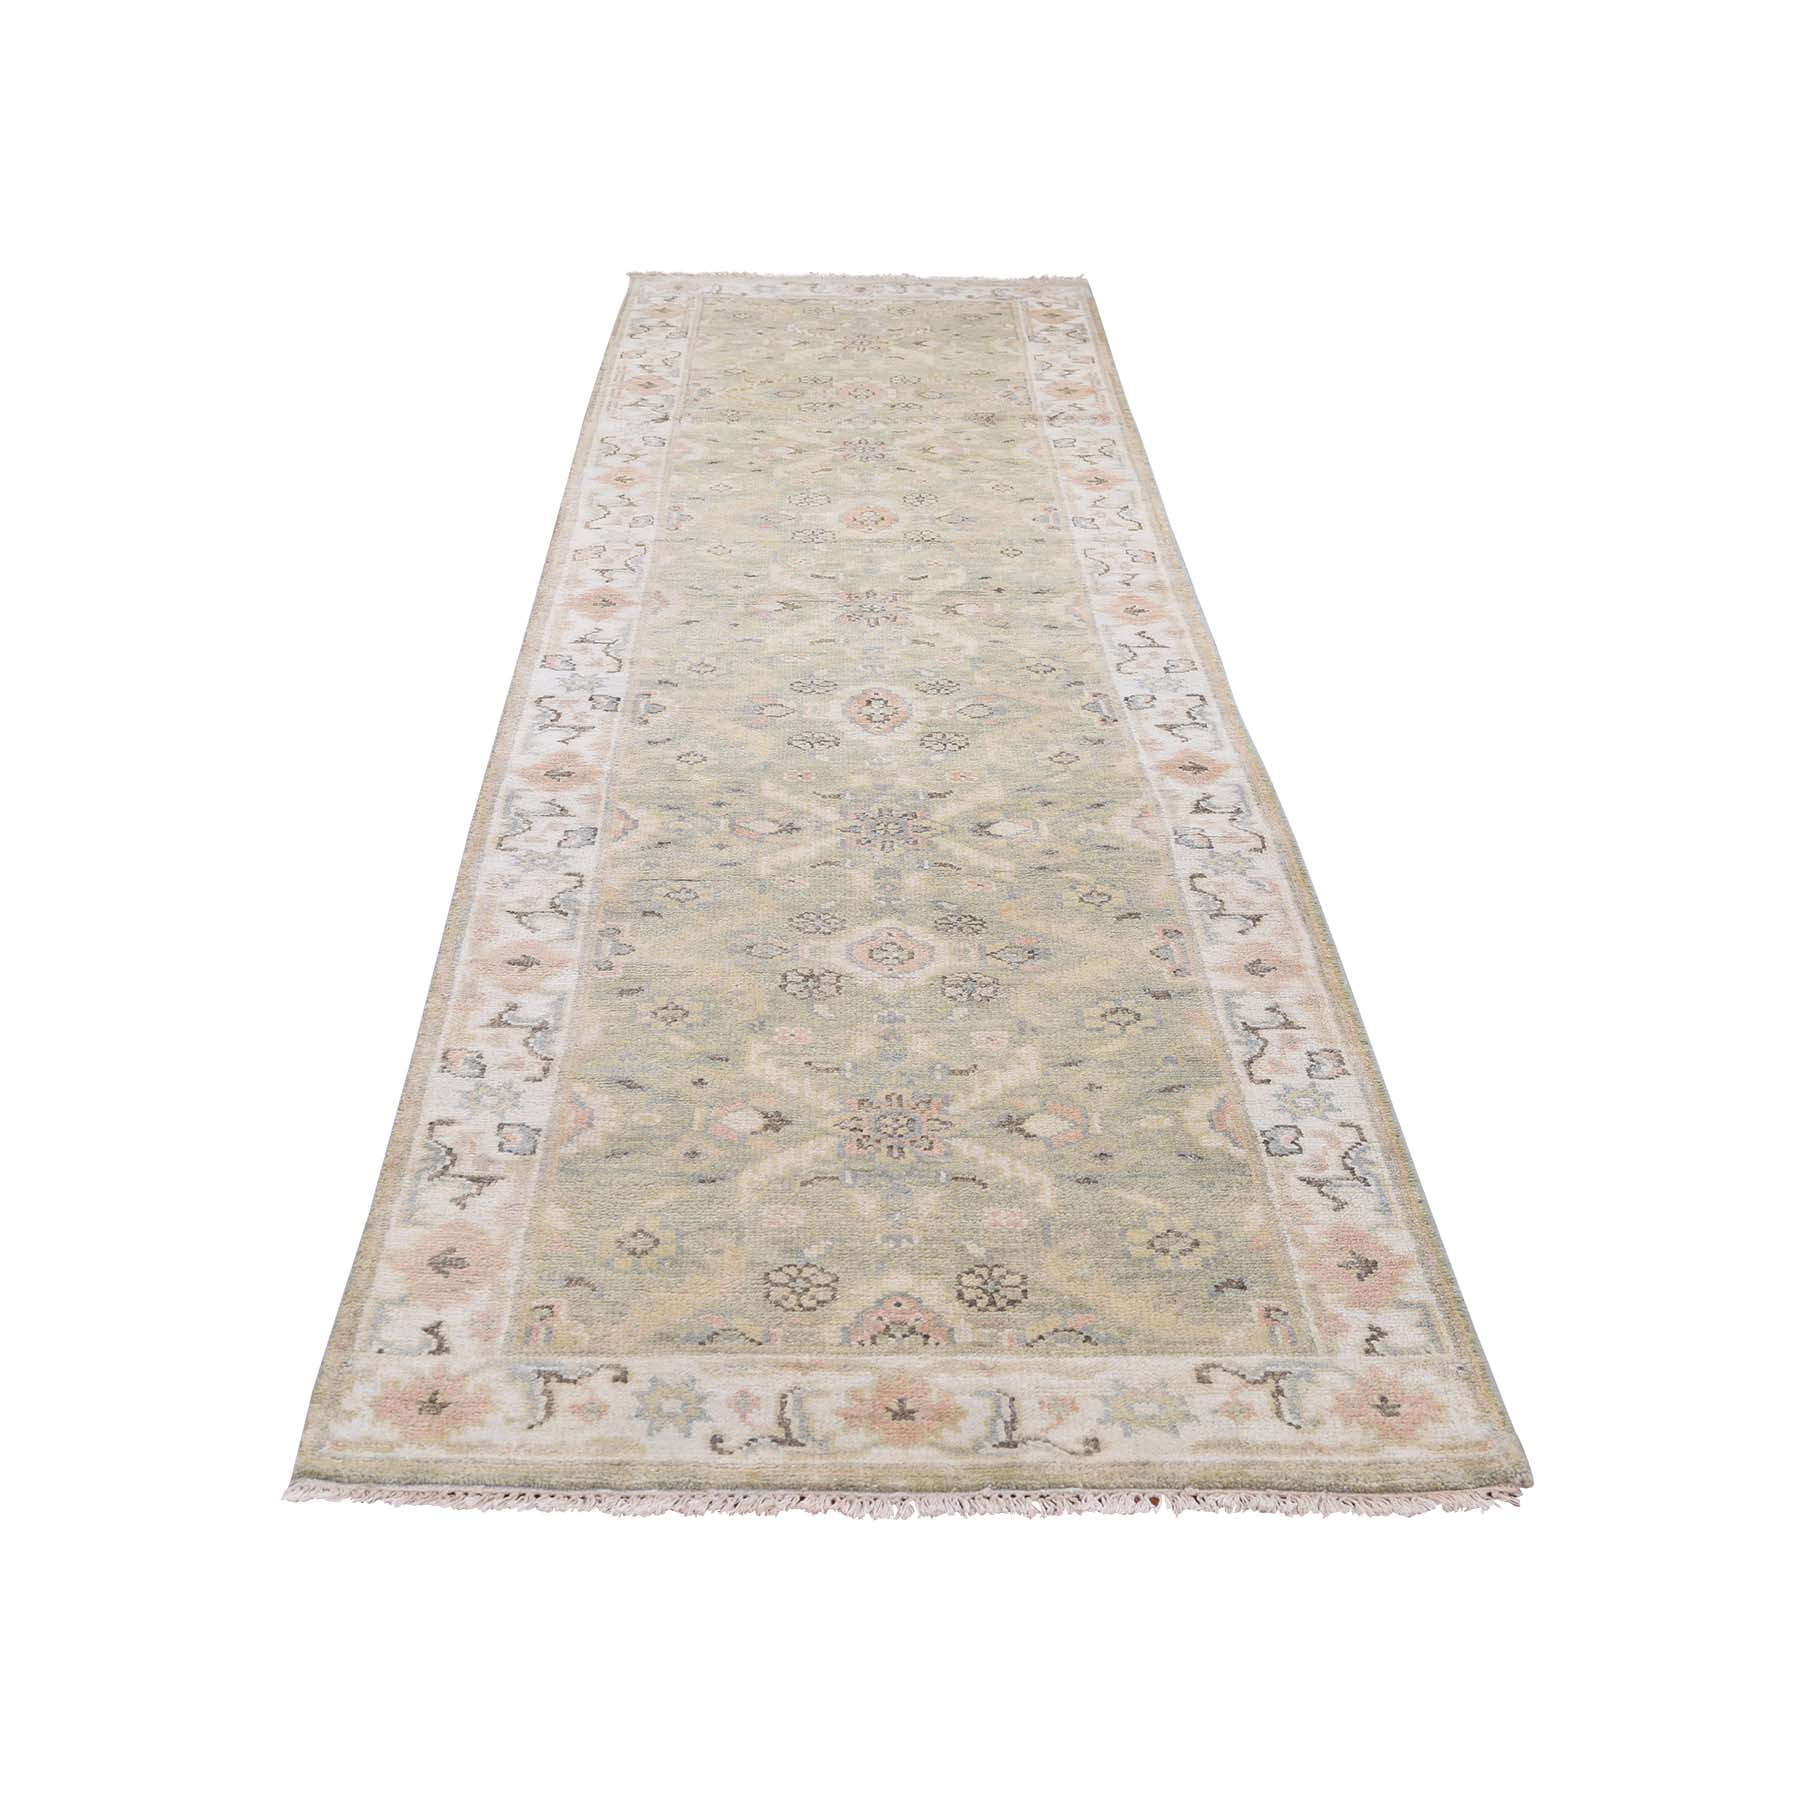 "3'x11'10"" Pure Wool Indo Oushak Runner Hand-Knotted Oriental Rug"